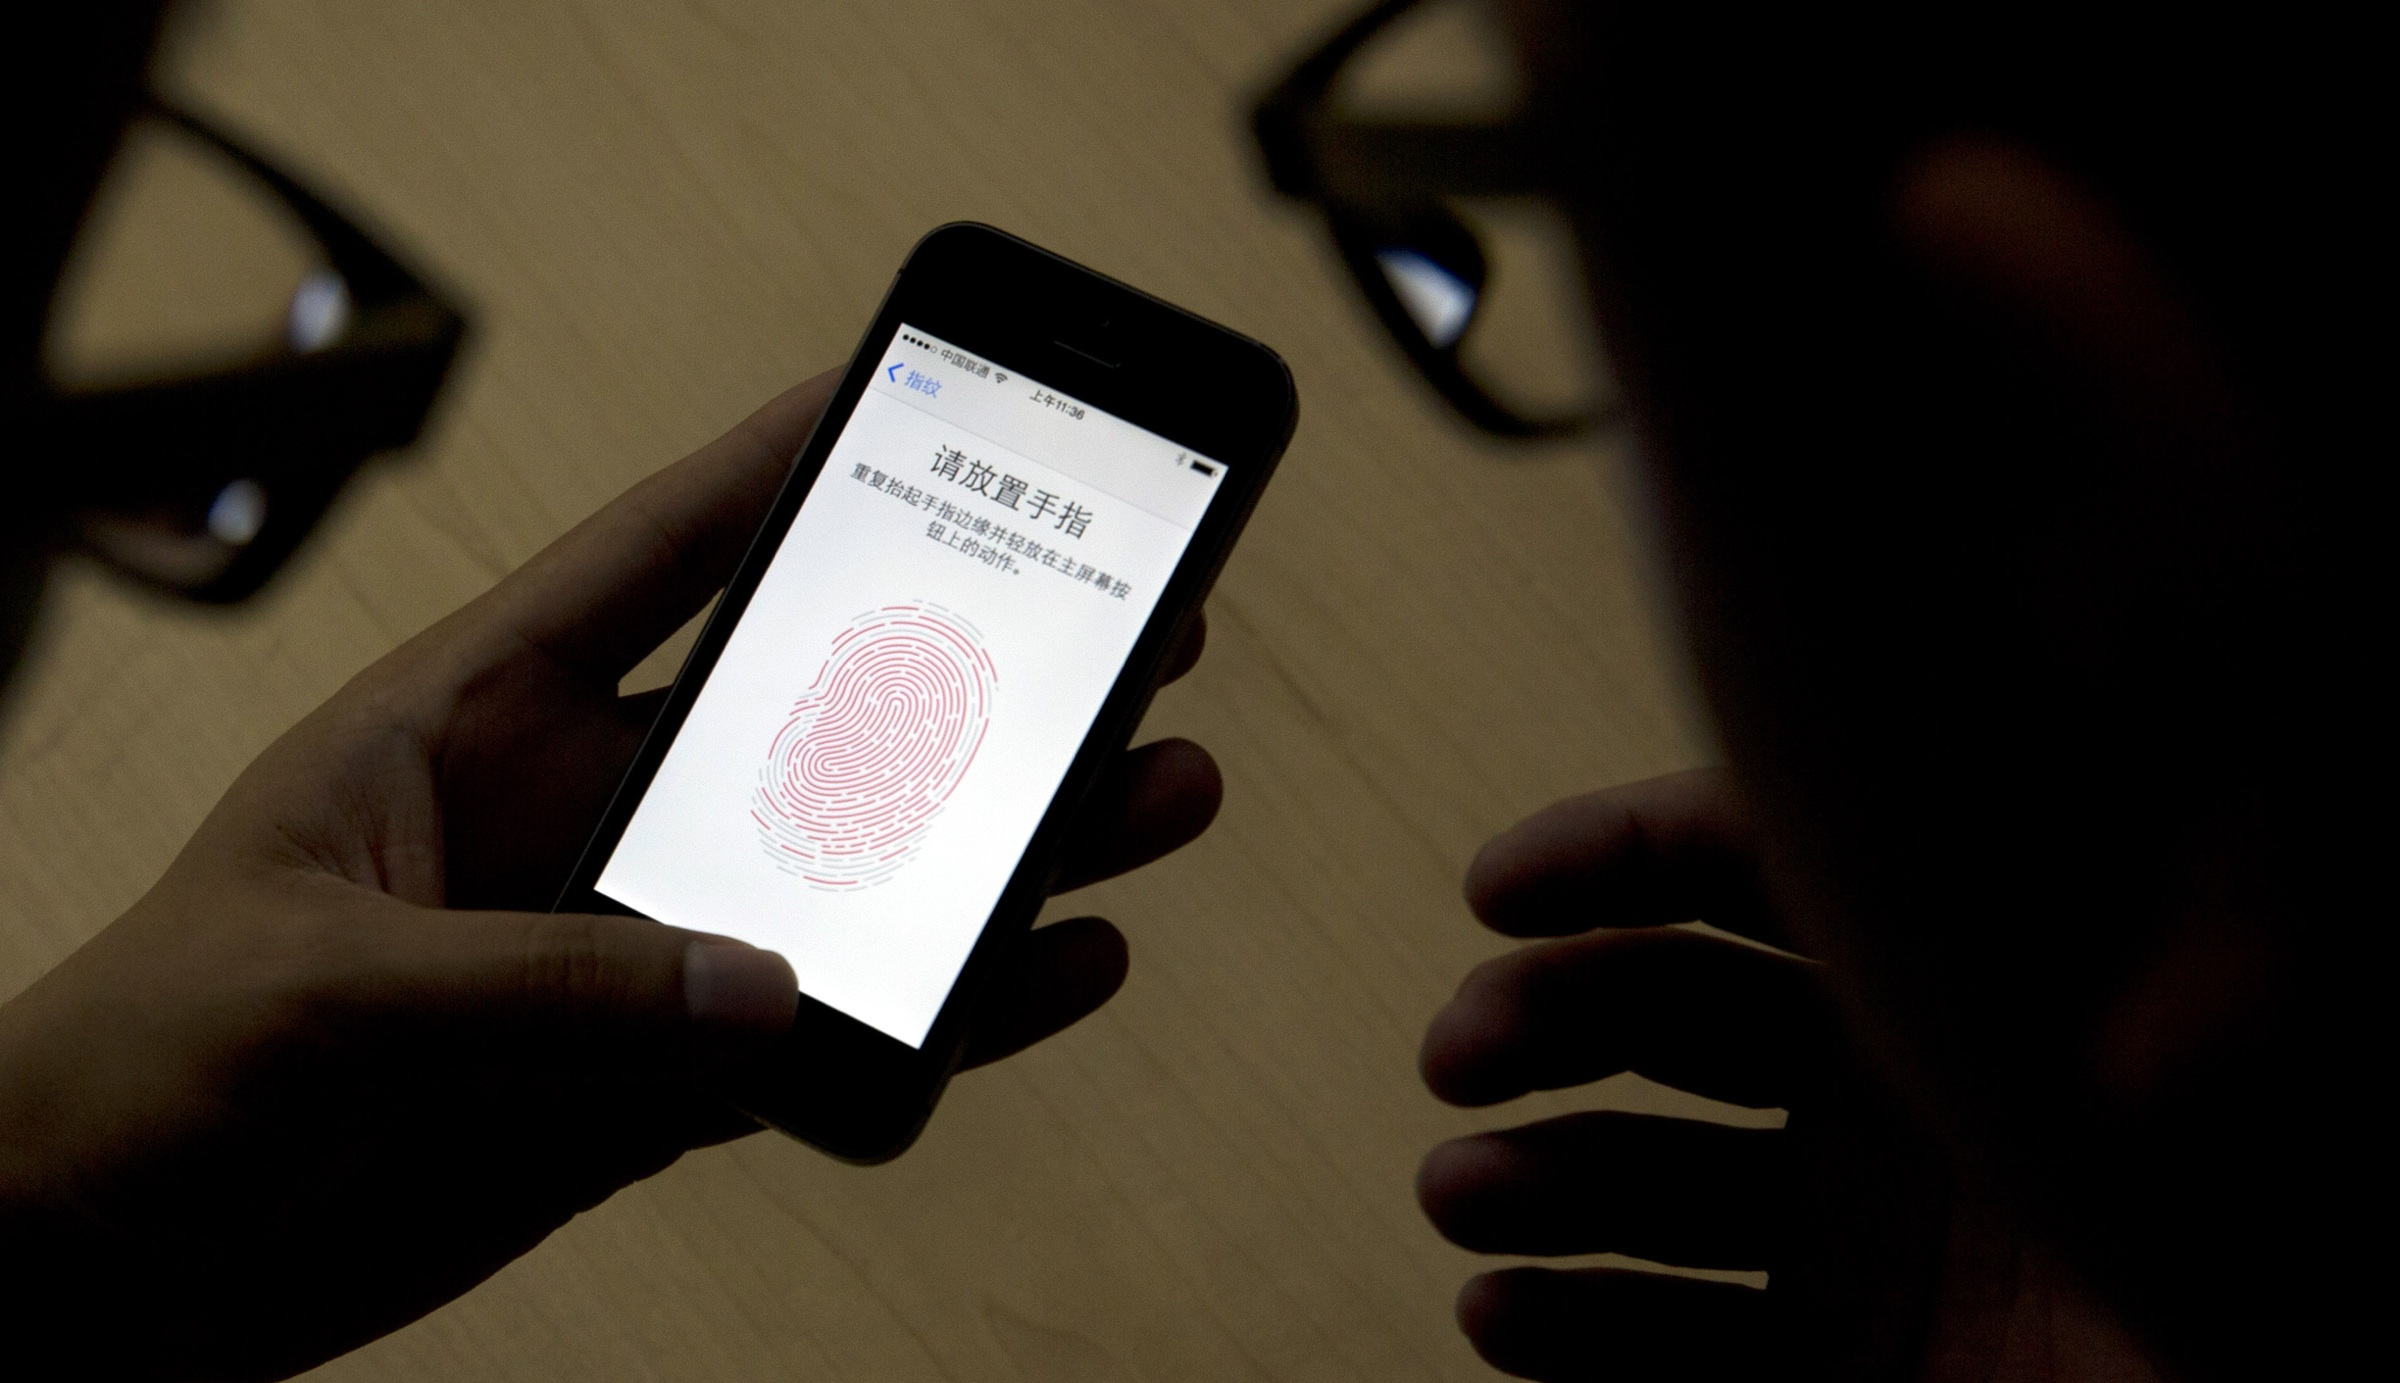 Researchers are working on systems for securing smartphones that